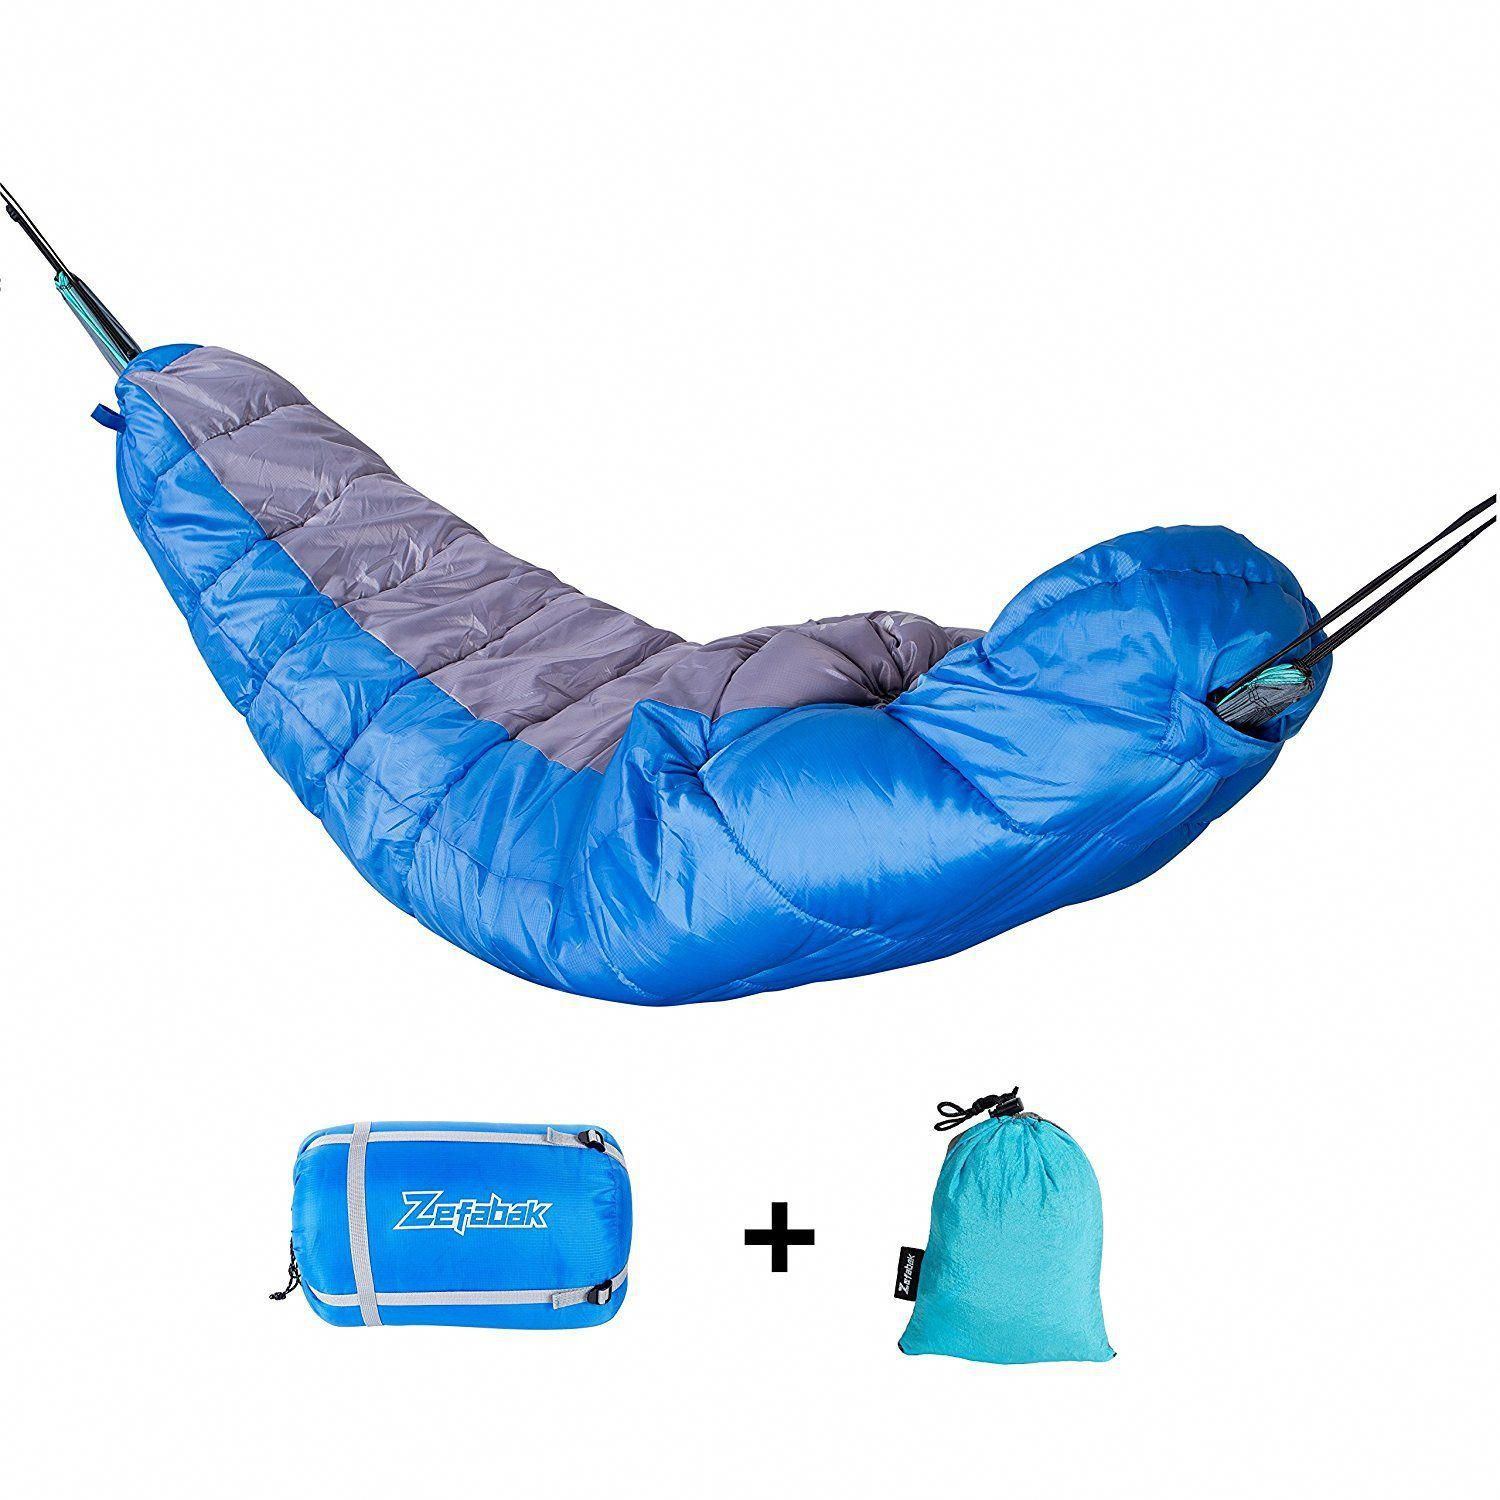 a54ffe168b We think this 2-in-1 Hammock   Single Mummy Sleeping Bag for tent camping  and backpacking makes it easy for the monster spider or bears to eat you.